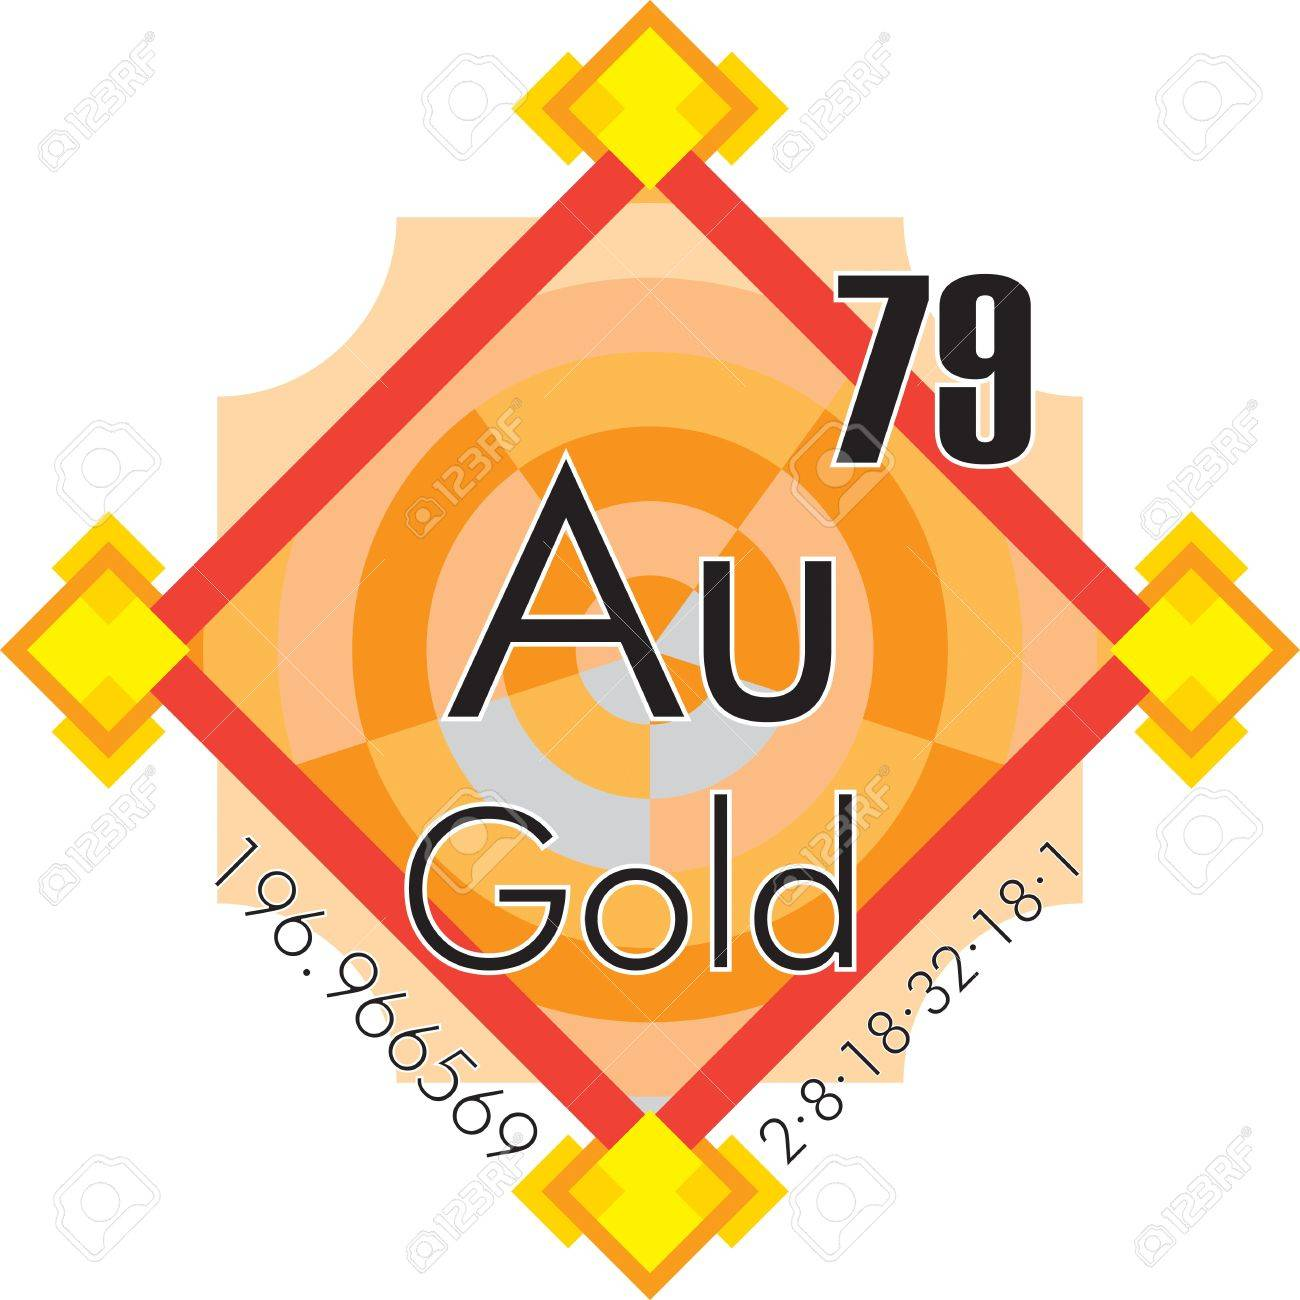 Periodic table symbol for gold choice image periodic table images periodic table symbol for gold gallery periodic table images periodic table symbol for gold choice image gamestrikefo Gallery